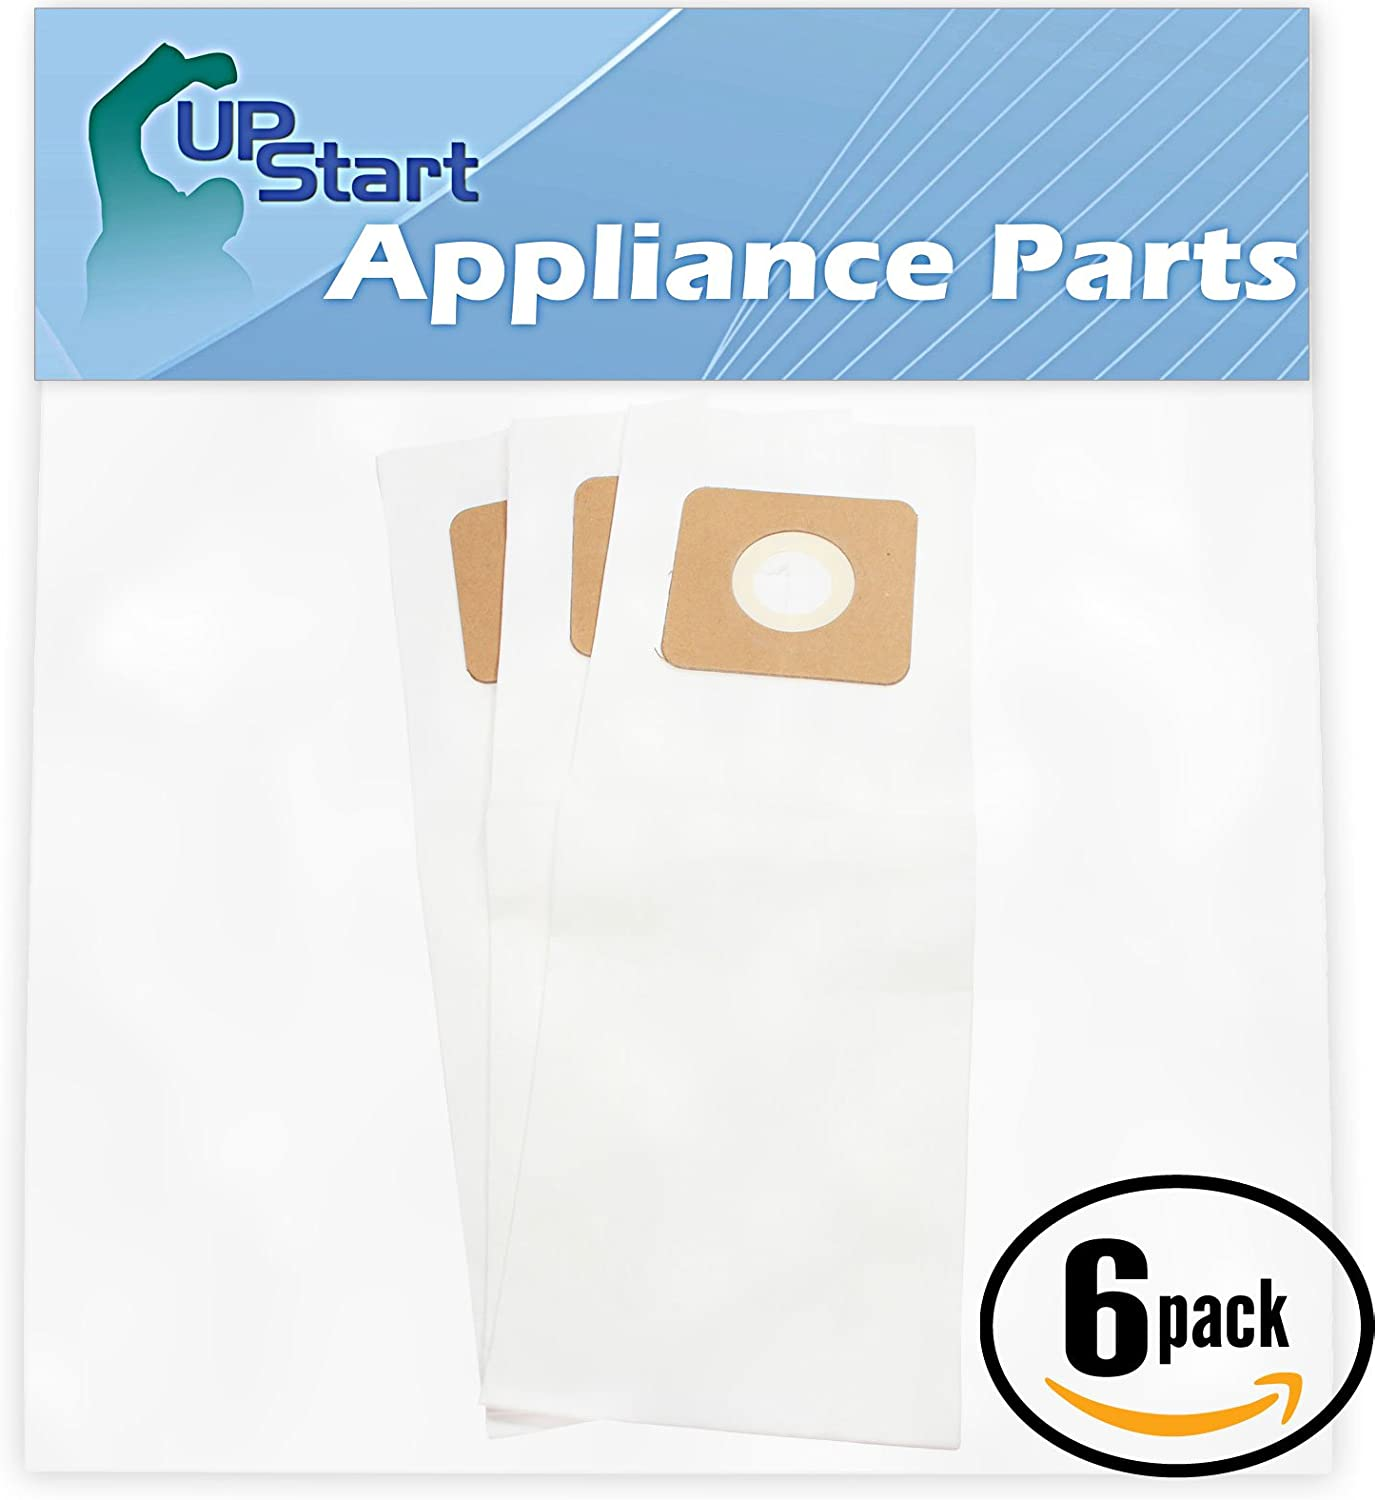 Upstart Battery 18 Replacement for Fuller Brush FBP-14PW Vacuum Bags - Compatible with Fuller Brush Type U, U-3, U-6 Vacuum Bags (6-Pack, 3 Bags per Pack)